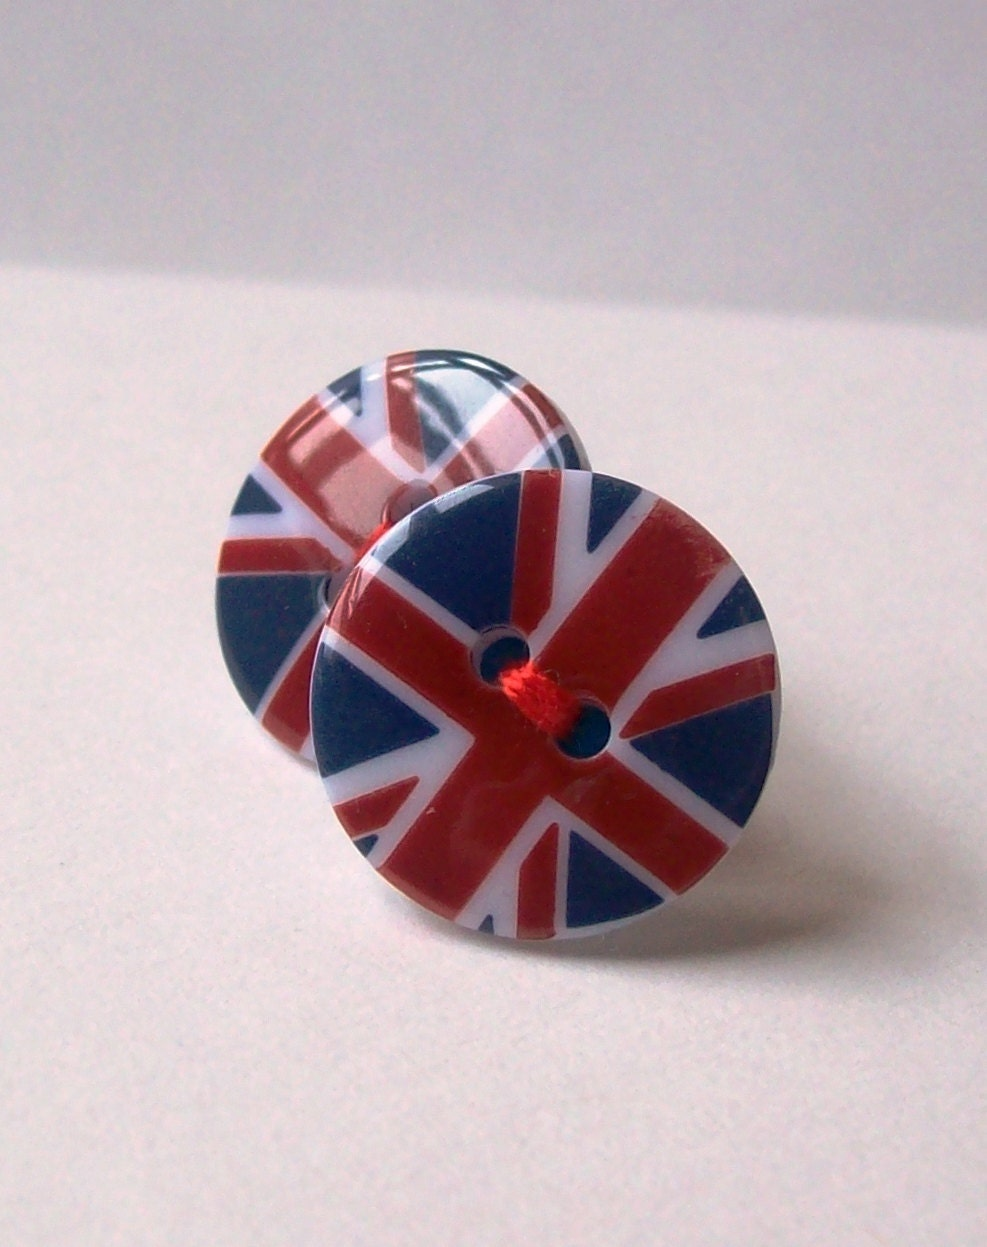 Union Jack Button Earrings - Diamond Jubilee - London 2012 Olympics